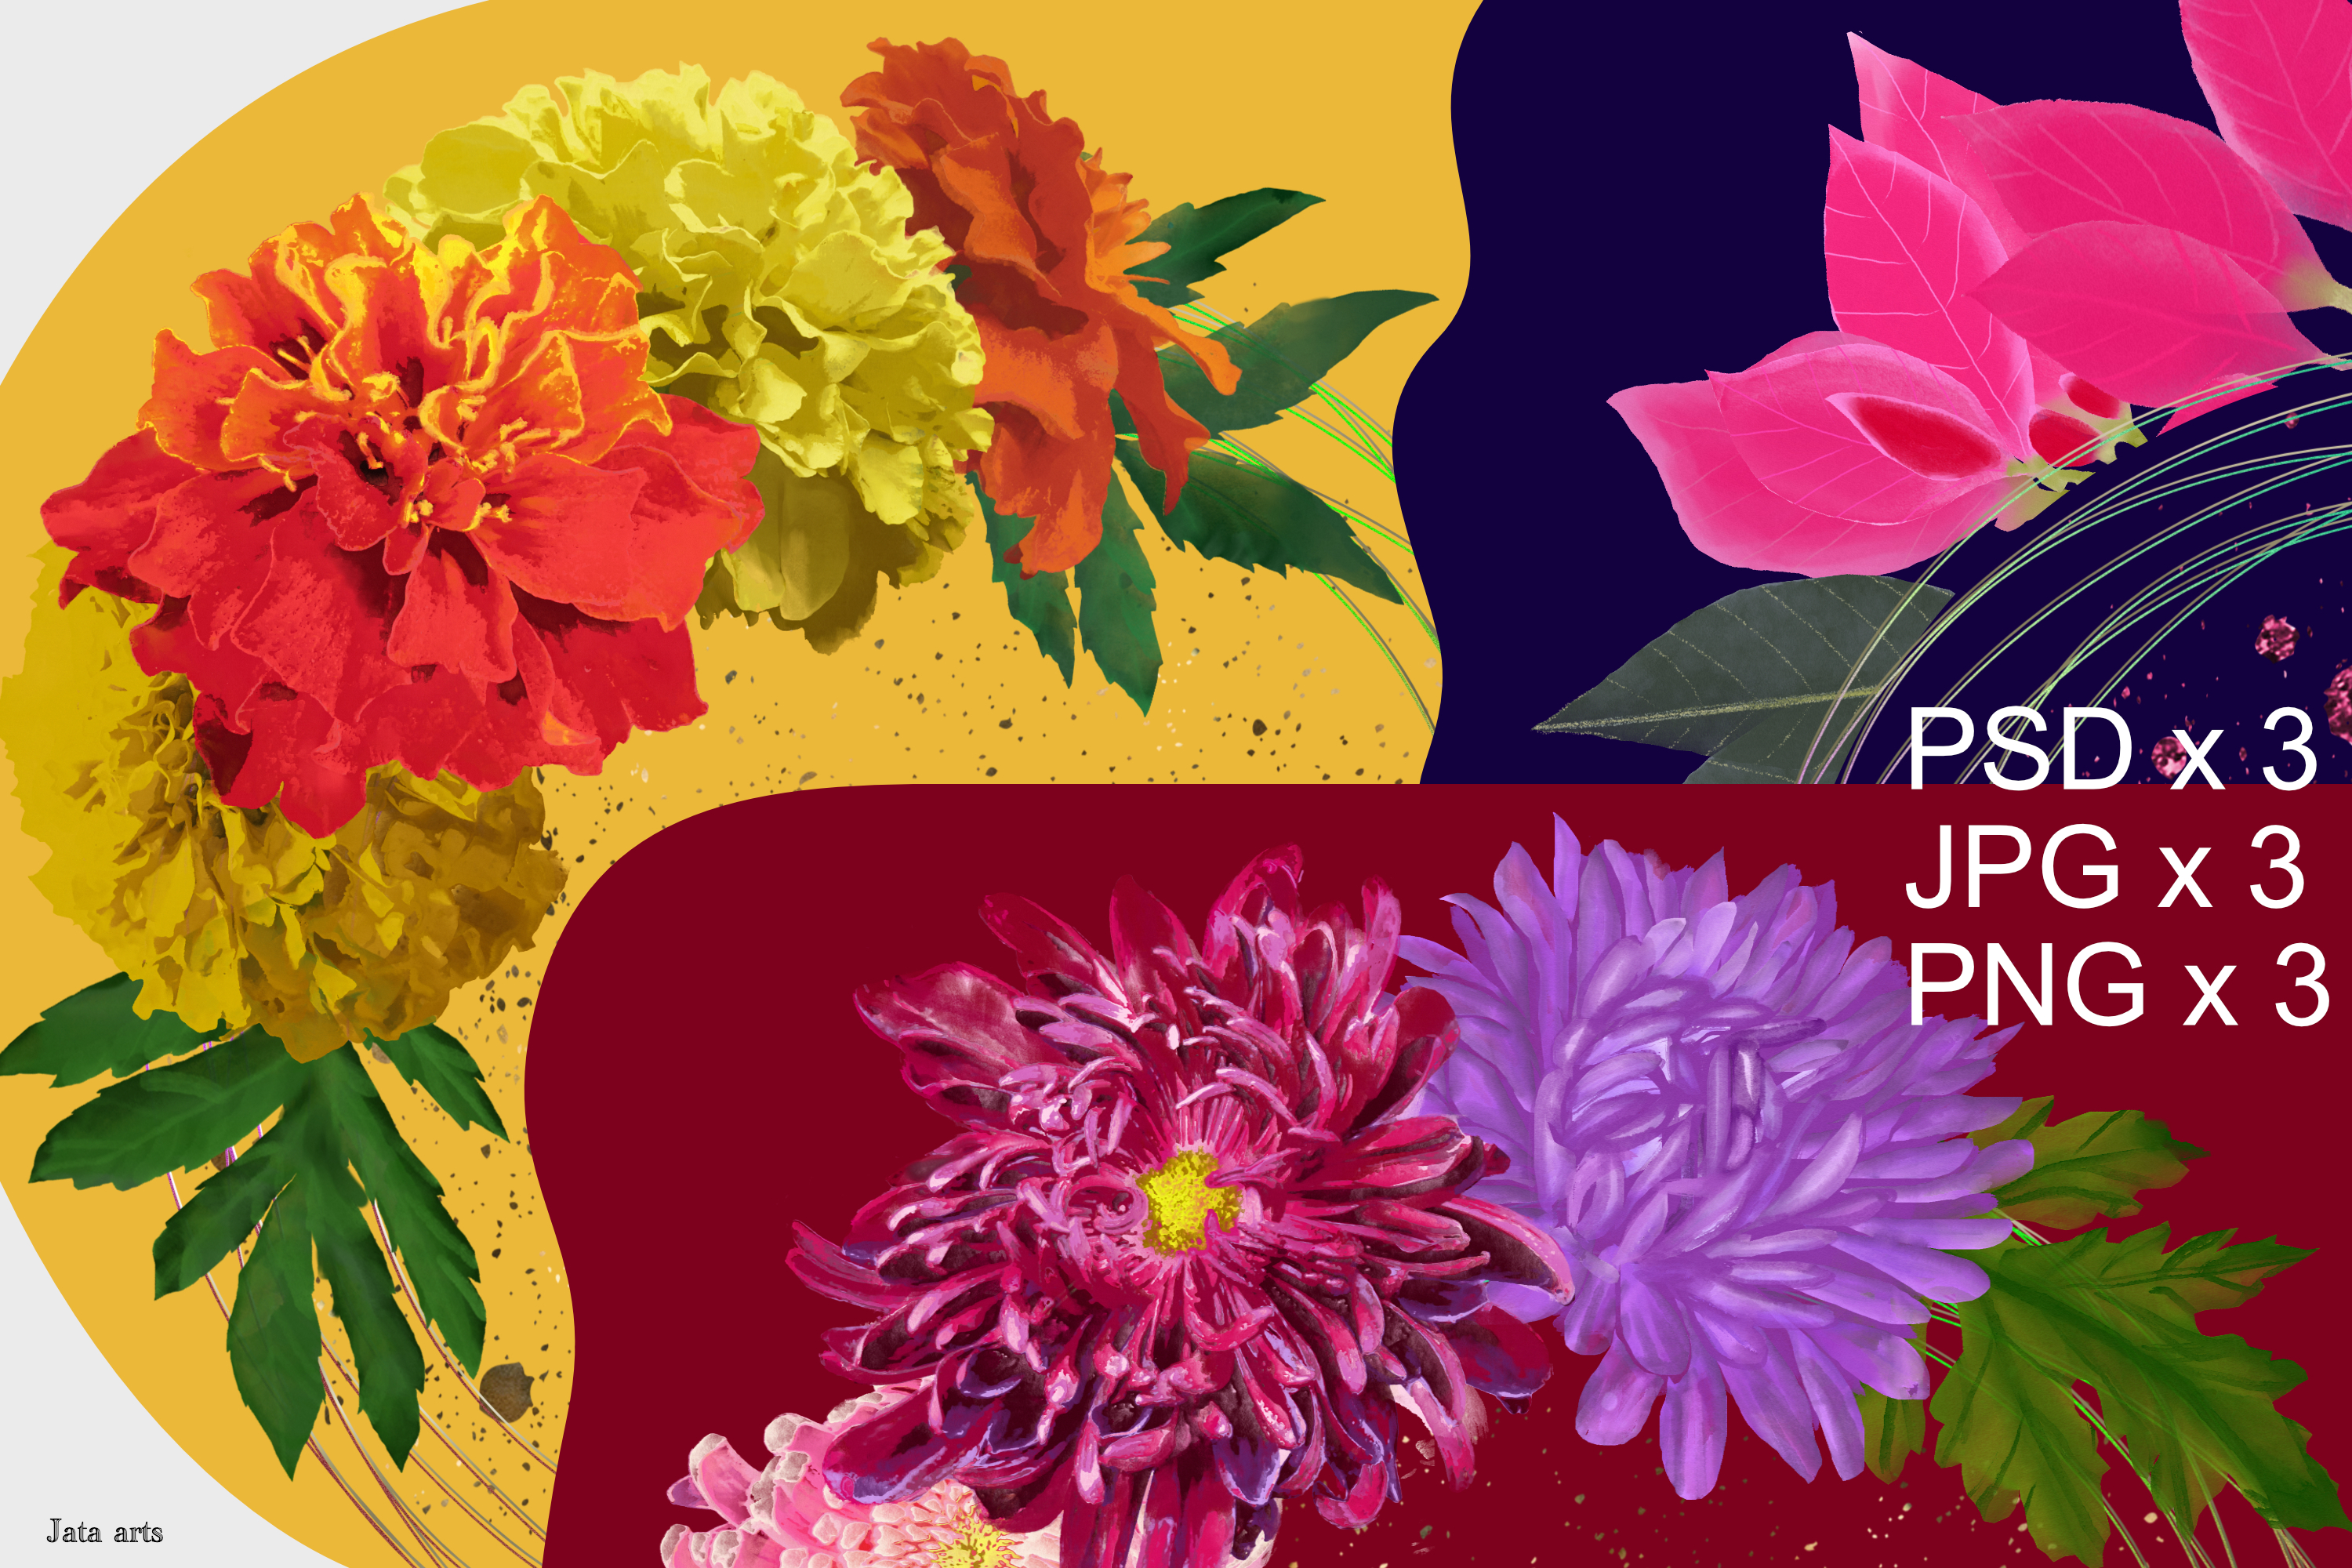 Download Free Bujo Cover Pages Floral Wreath Designs Graphic By Jata Arts for Cricut Explore, Silhouette and other cutting machines.